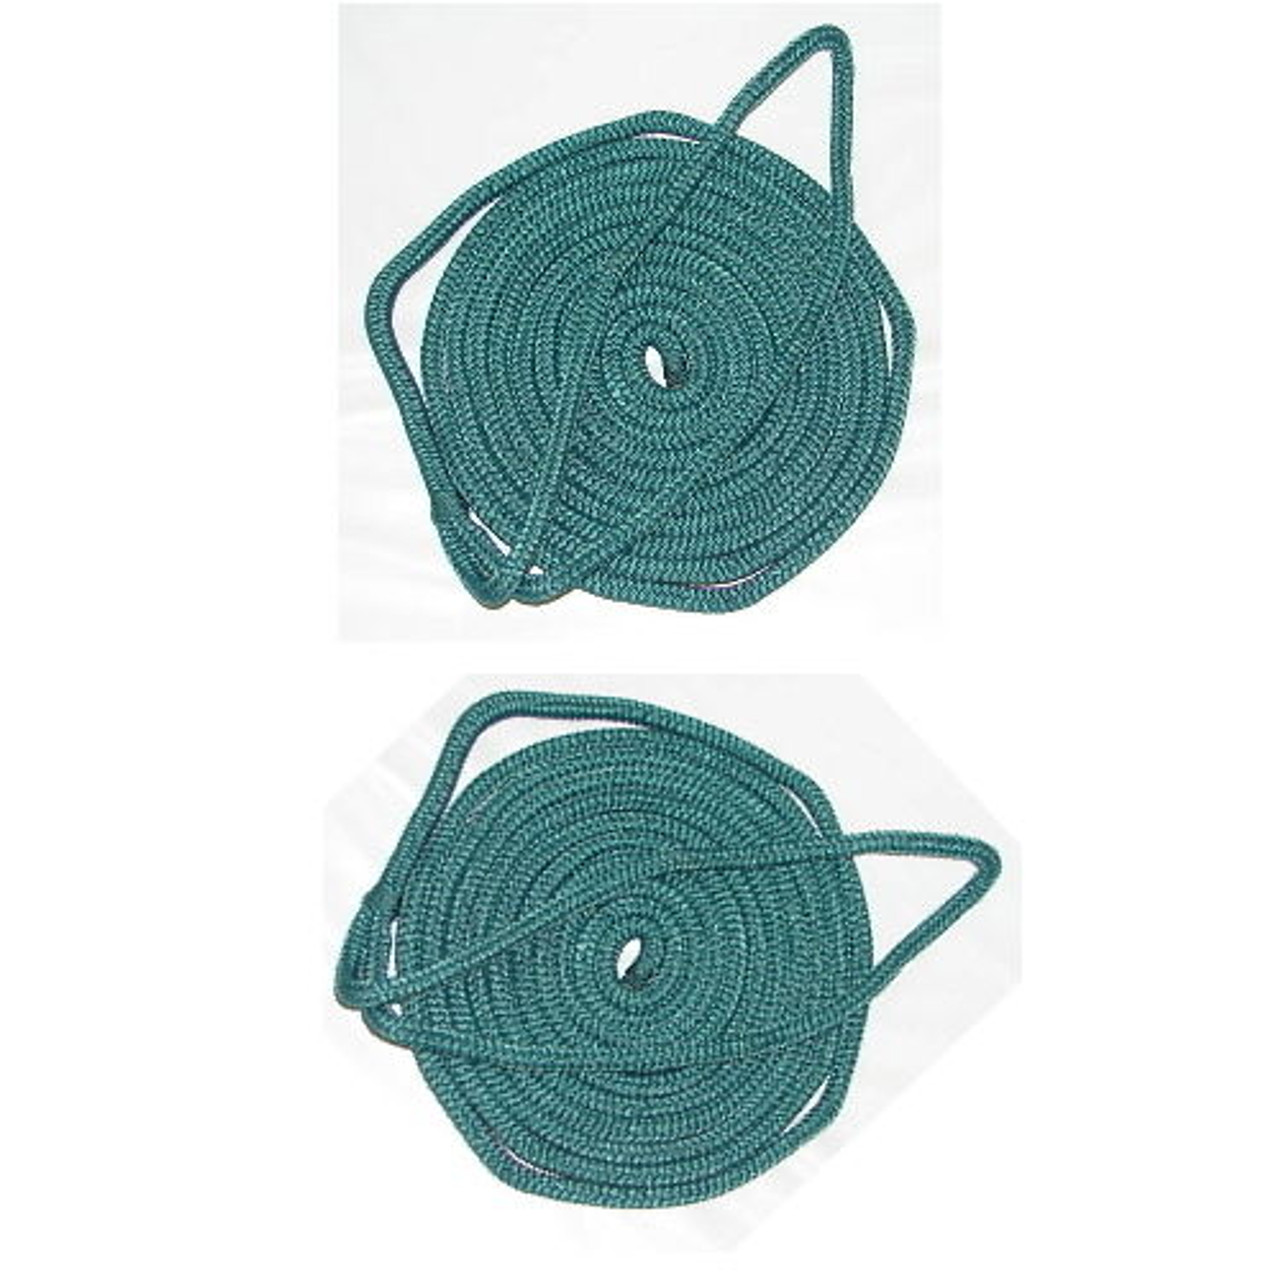 2 Pack of 3//8 Inch x 6 Ft Navy Blue Double Braid Nylon Fender Lines for Boats